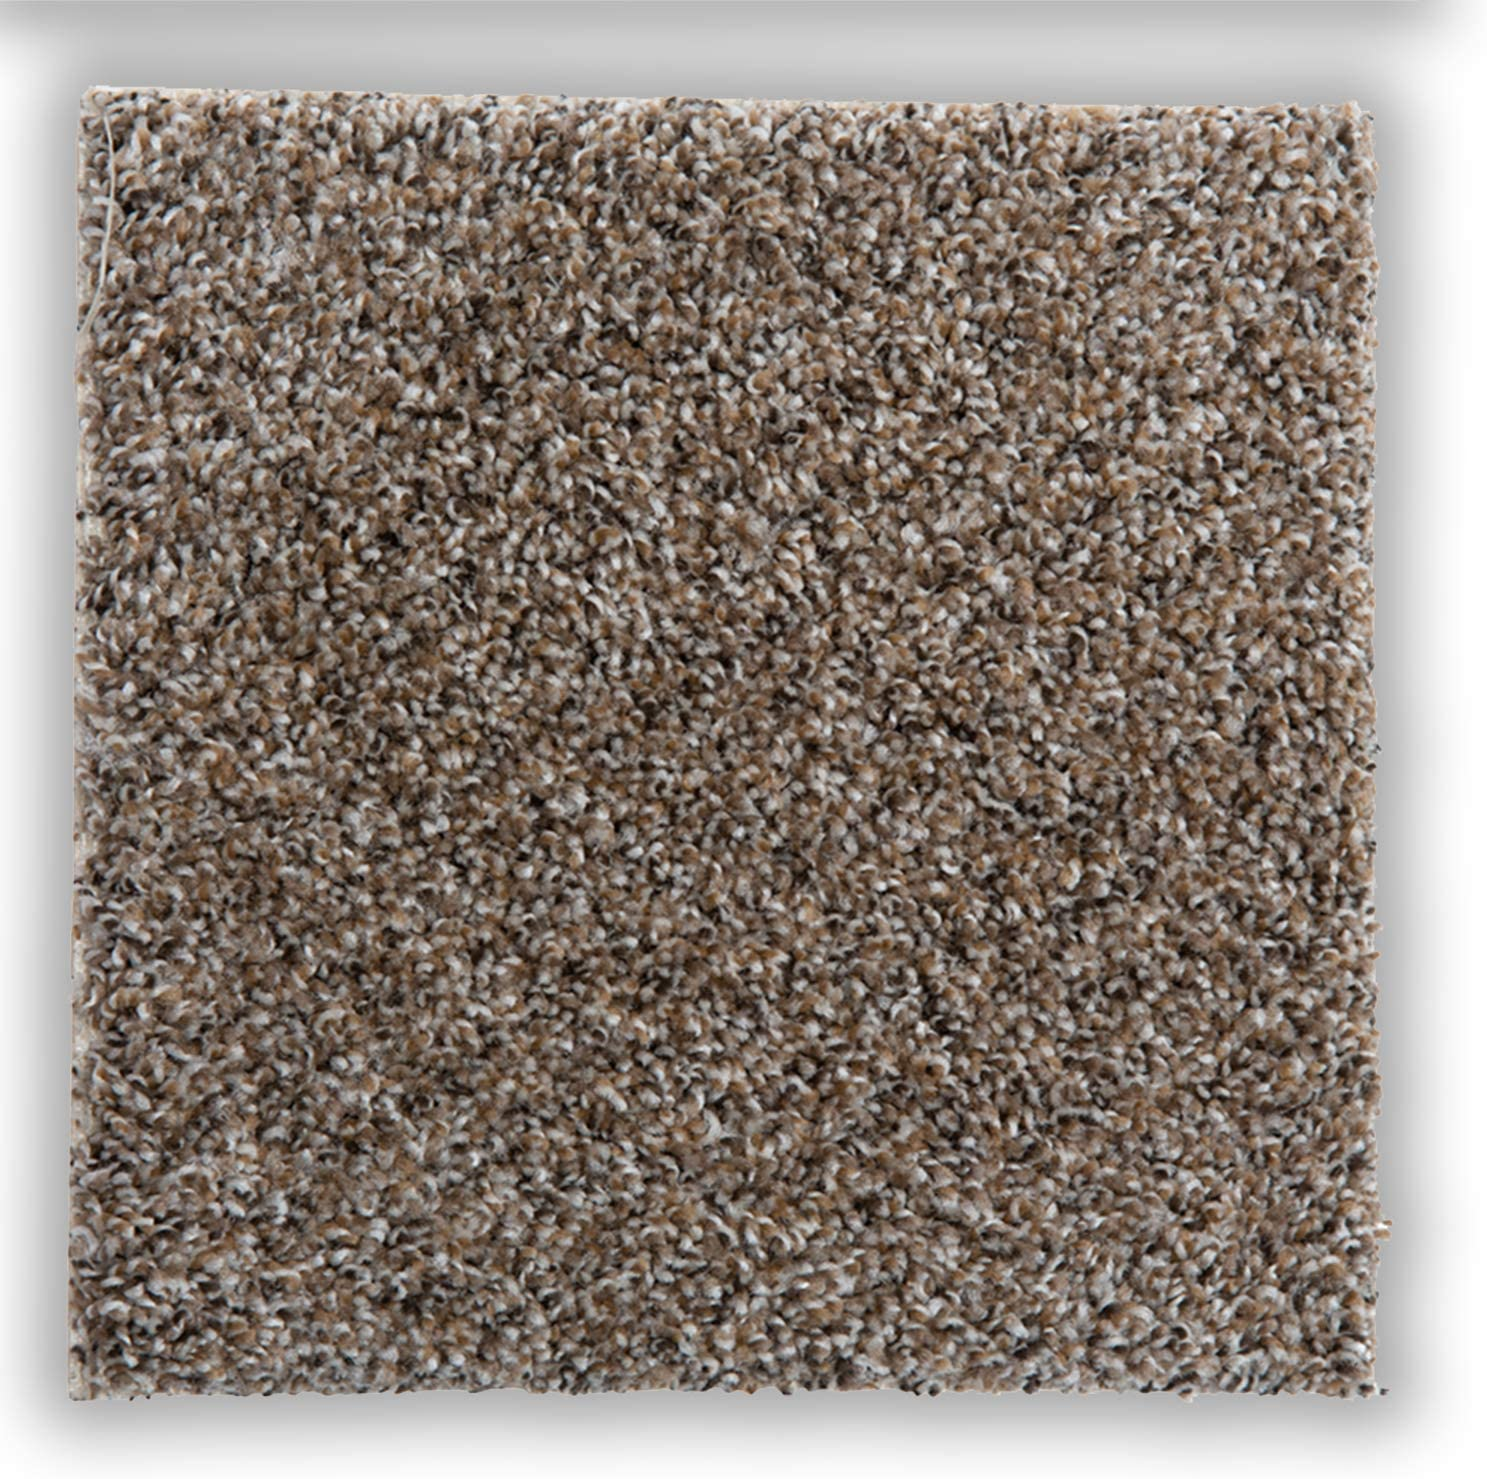 """Smart Squares Walk in The Park 18/"""" x 18/"""" Residential Soft Carpet Tiles 10 Tiles - 22.5 Sq Ft, 760 Gemstone Made in USA Seamless Appearance Peel and Stick Easy DIY Installation"""